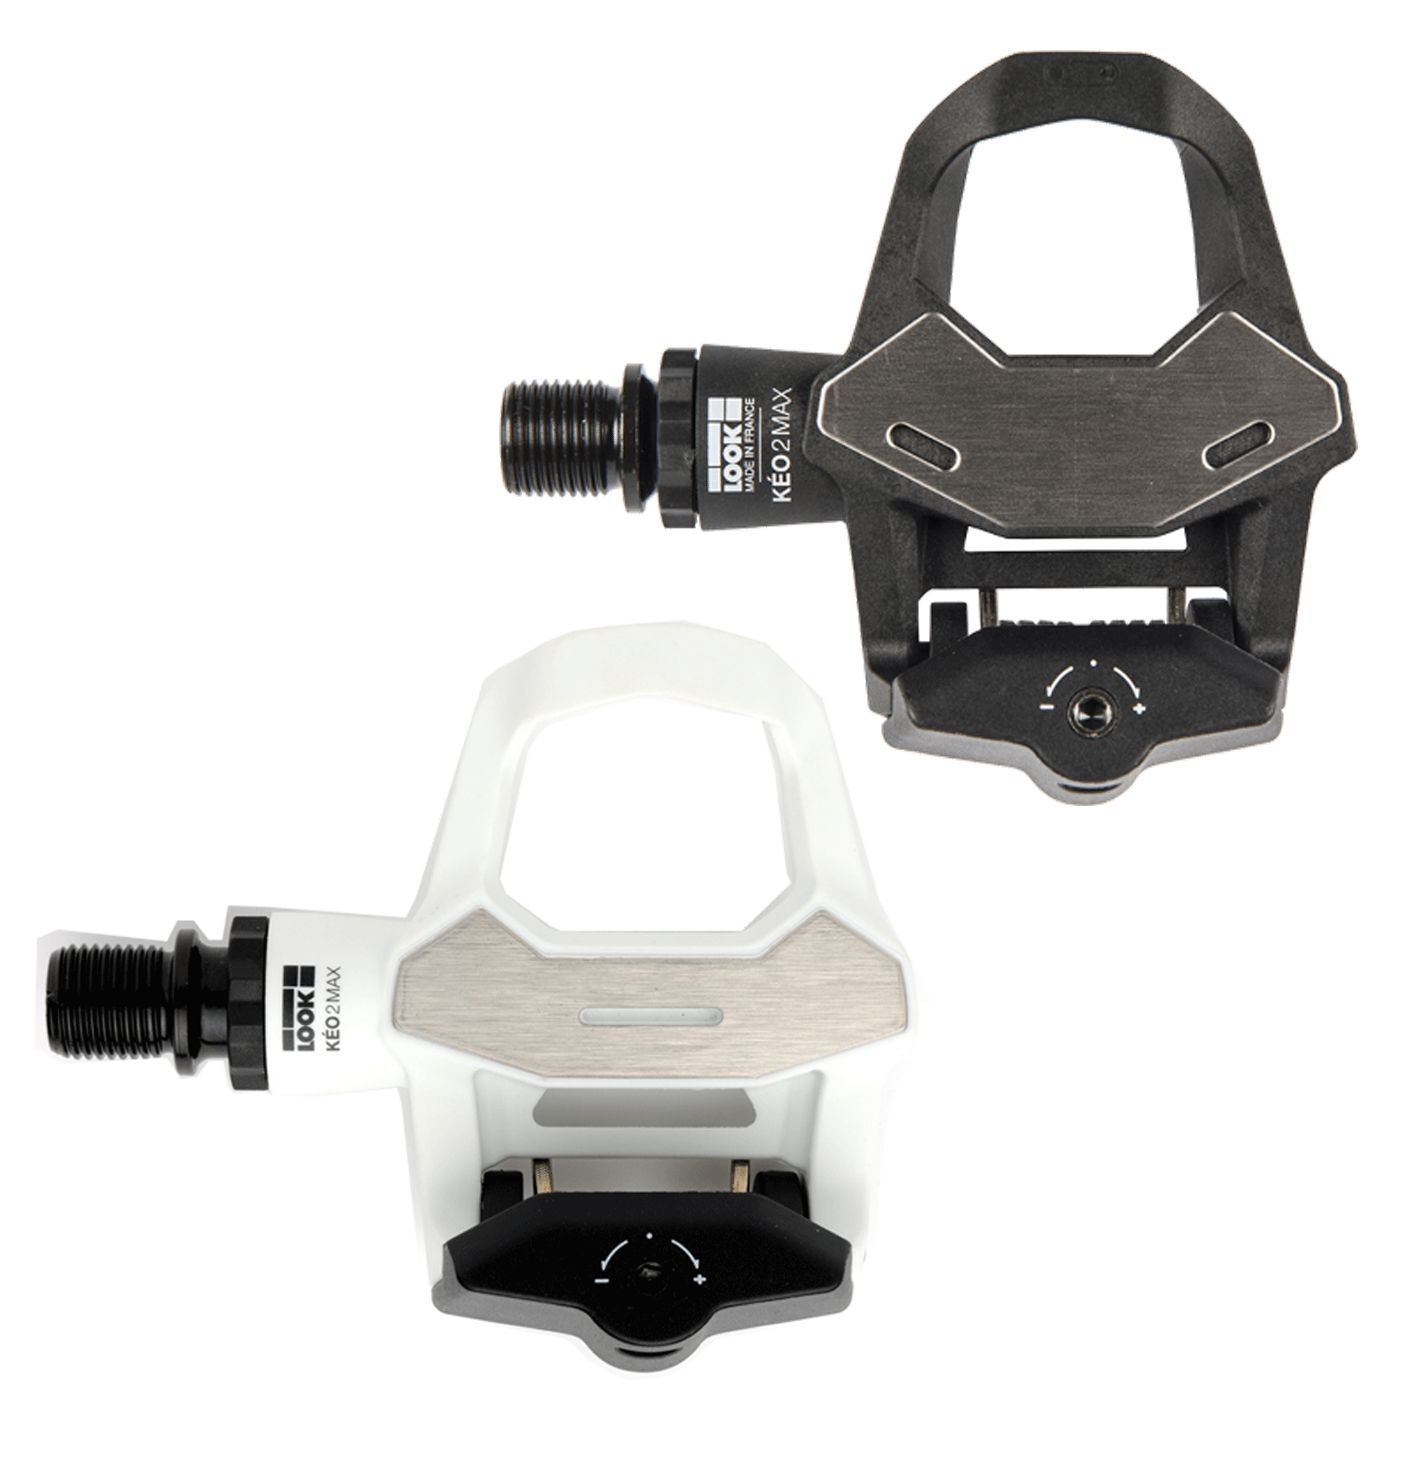 Look Keo 2 Max Pedals With Keo Grip Cleat | Pedals